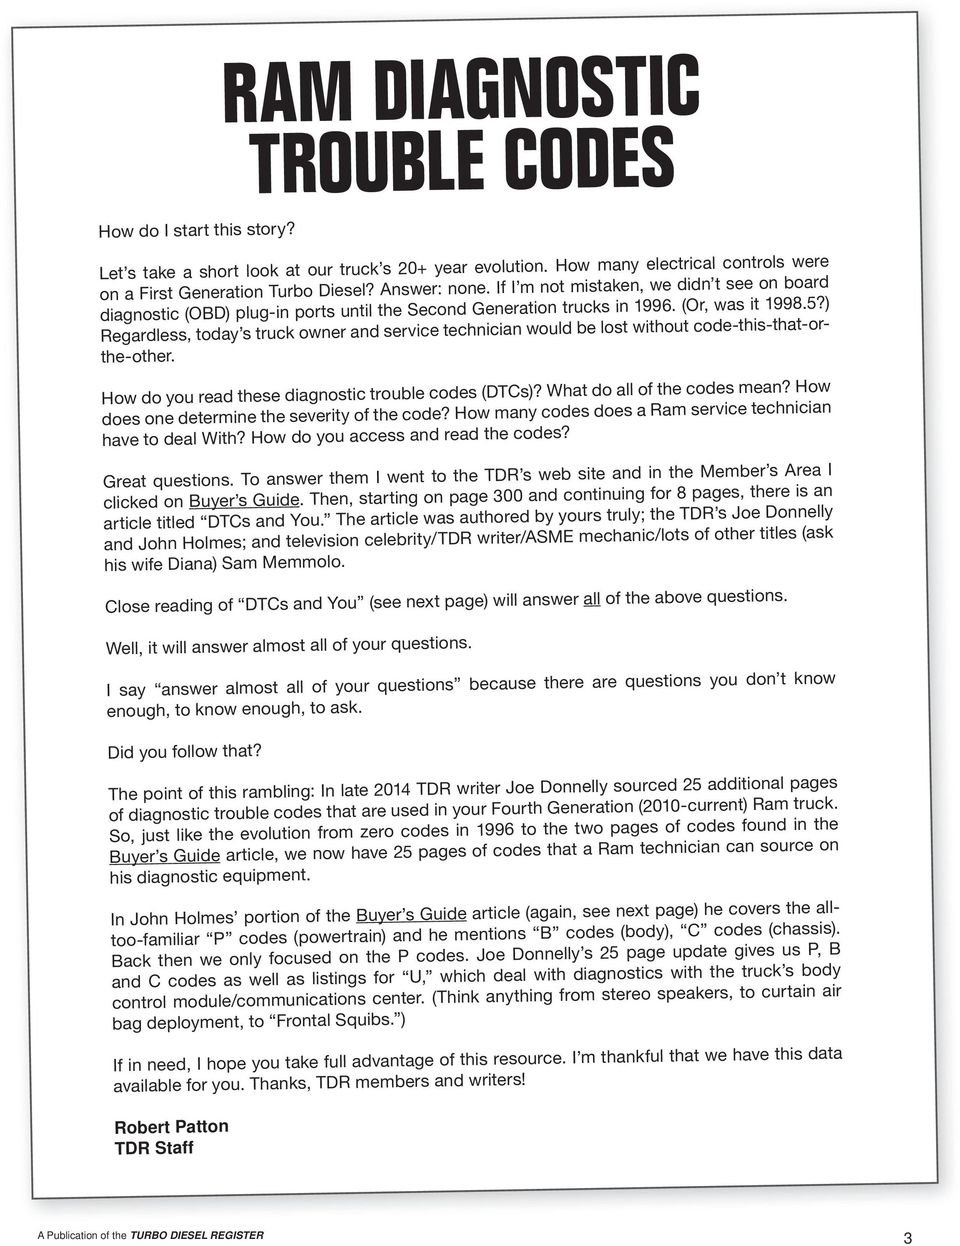 Ram Diagnostic Trouble Codes Pdf 2003 Dodge Wiring Diagram Maf Regardless Today S Truck Owner And Service Technician Would Be Lost Without Code